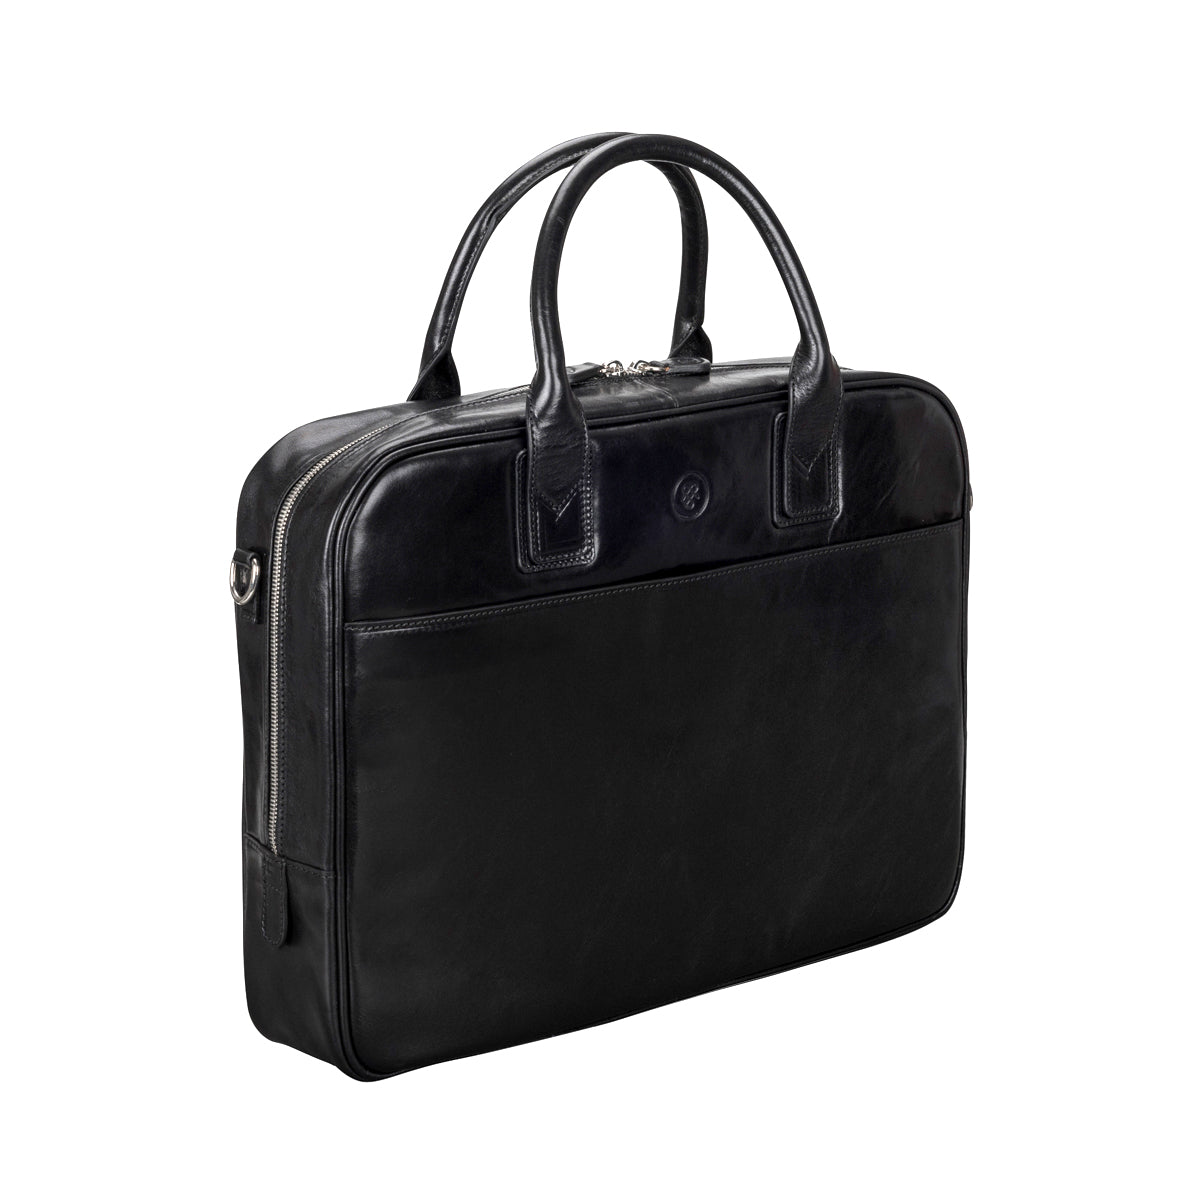 Image 4 of the 'Calvino' Black Veg-Tanned Leather Briefcase